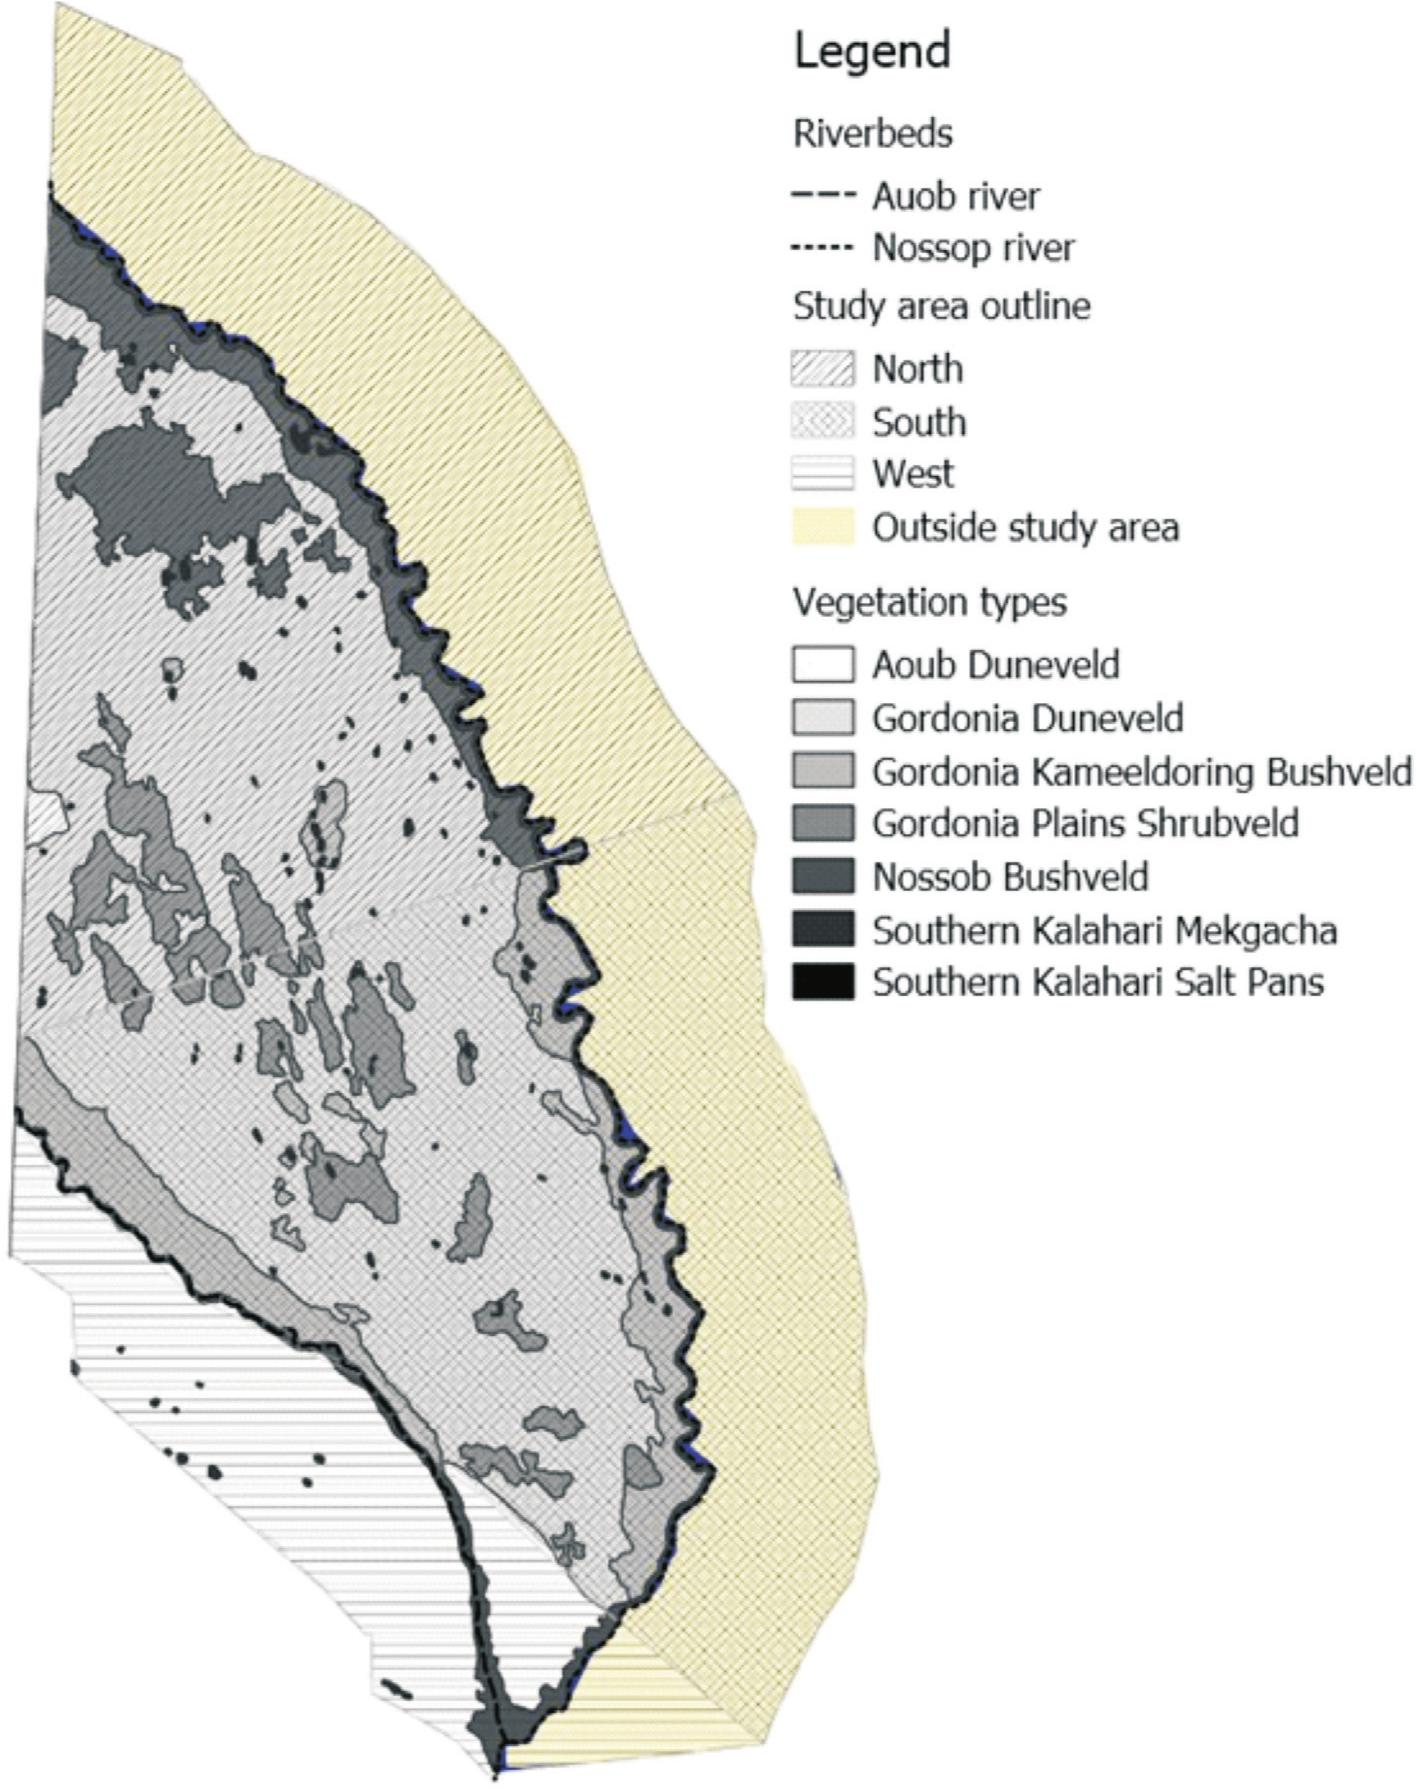 Spatial And Seasonal Variation In Lion Panthera Leo Diet In The Southwestern Kgalagadi Transfrontier Park